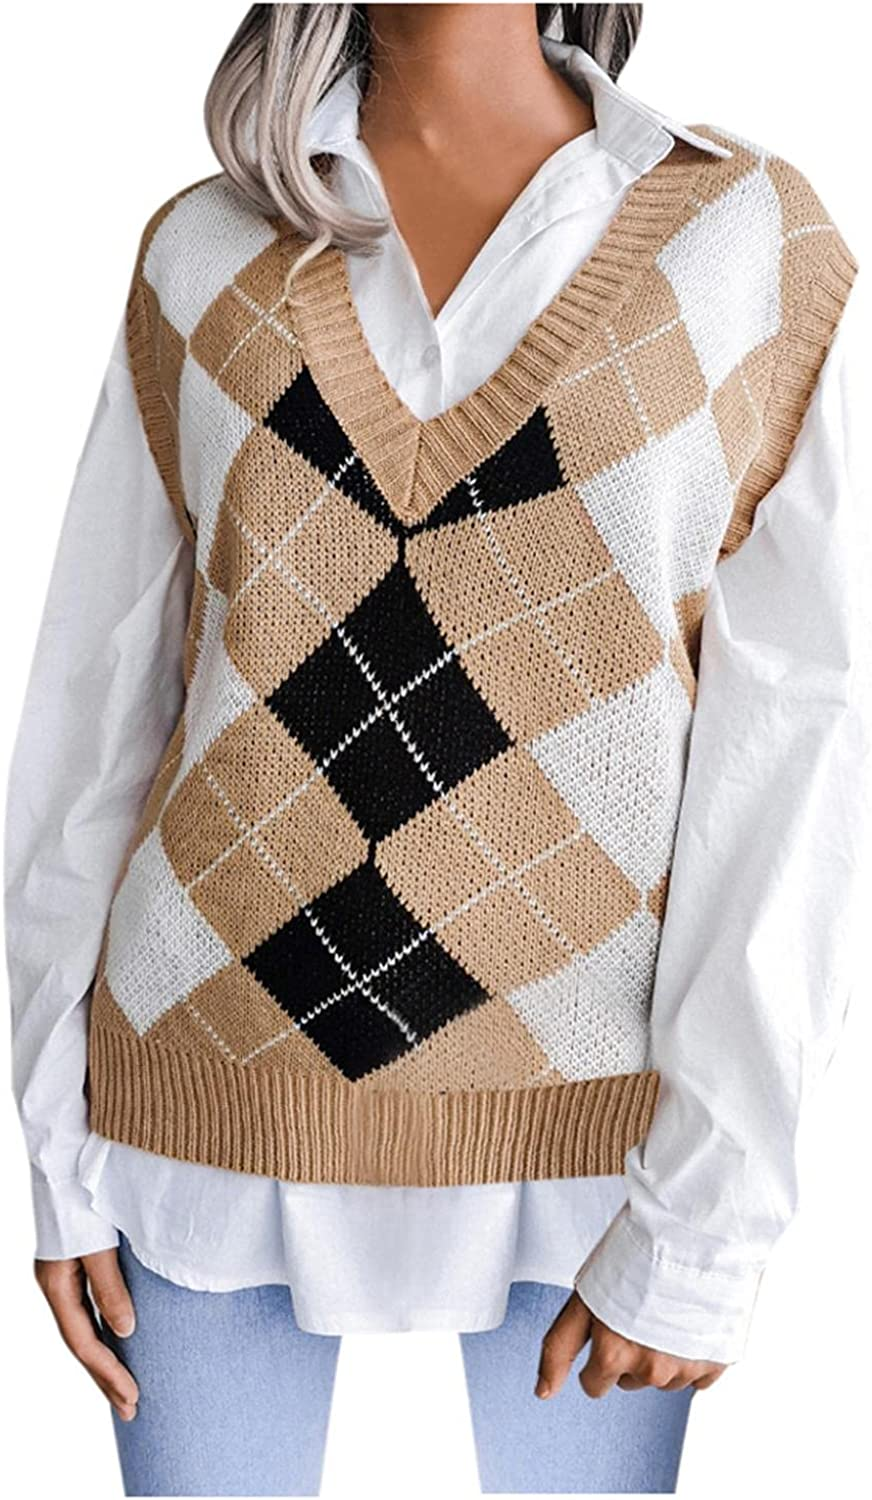 Sweater Vest Women Oversized Knitted V Neck Plaid Sweaters Sleeveless Knitwear Tank Tops Casual Lightweight Pullover